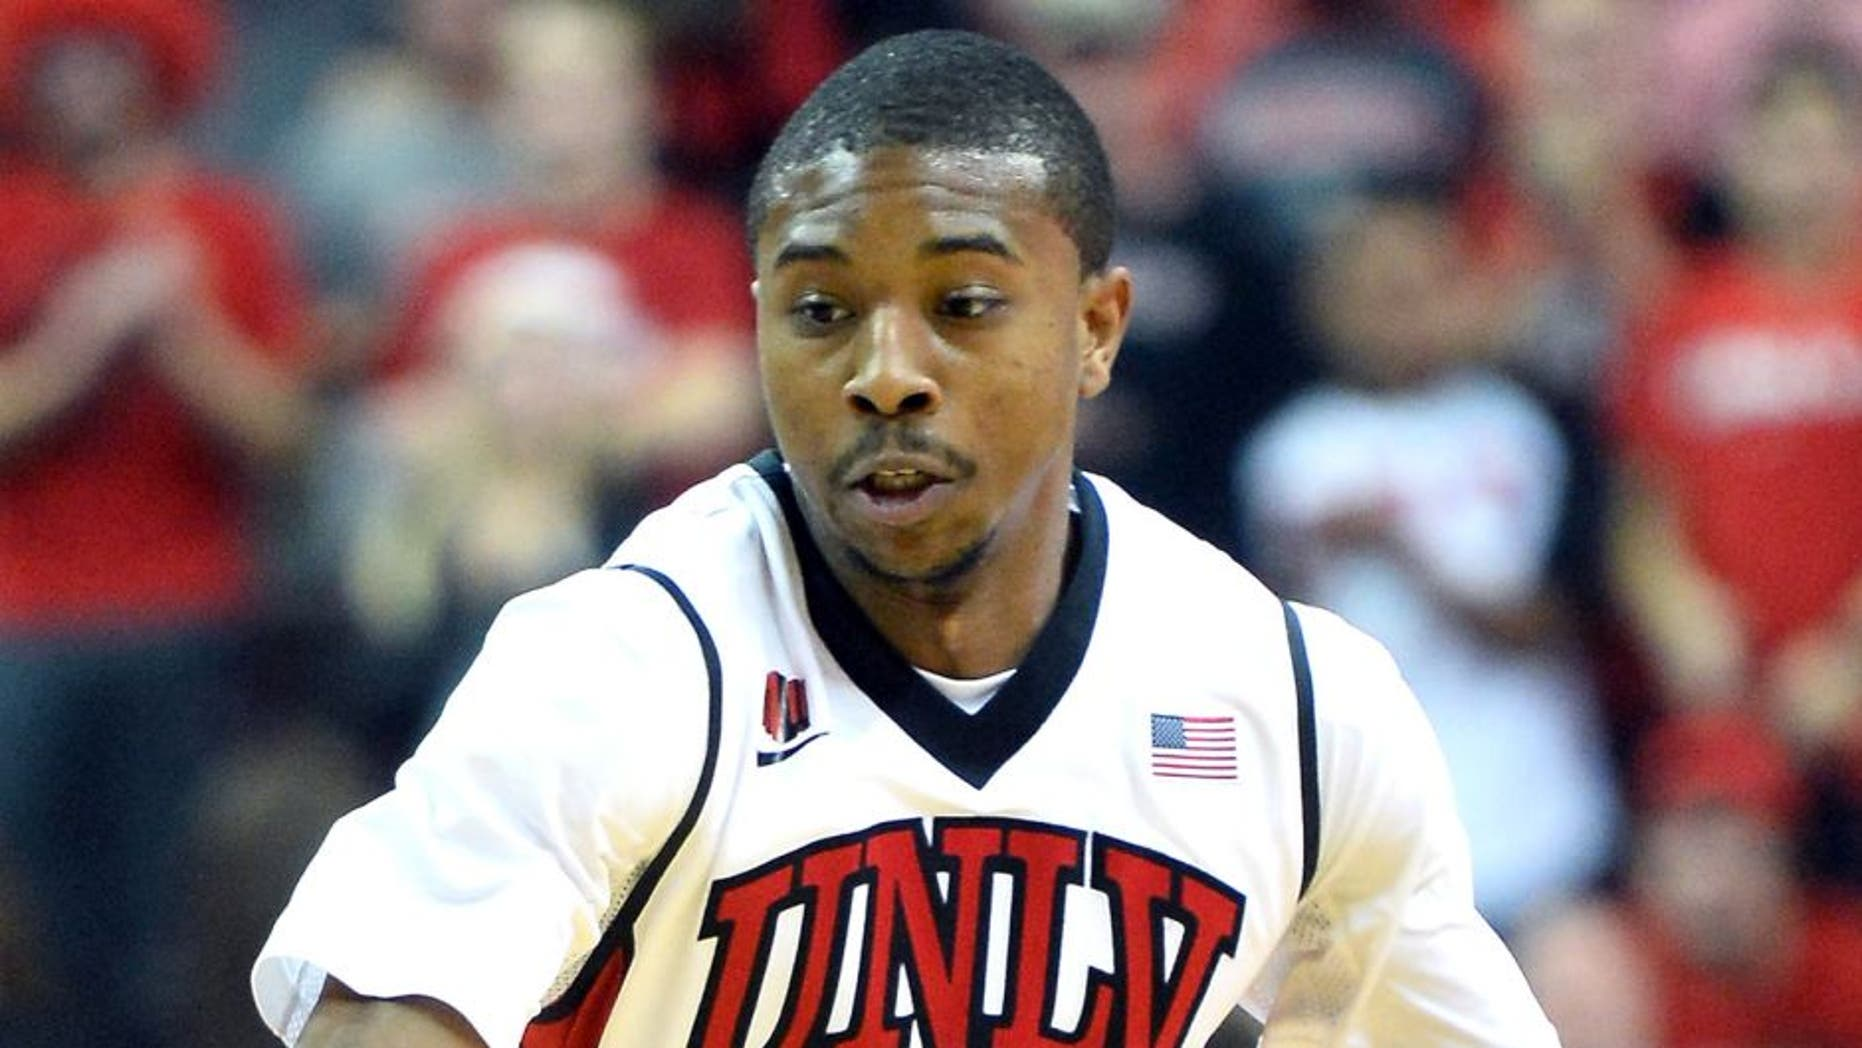 LAS VEGAS, NV - NOVEMBER 26: Daquan Cook #10 of the UNLV Rebels brings the ball up the court against the Illinois Fighting Illini during their game at the Thomas & Mack Center on November 26, 2013 in Las Vegas, Nevada. Illinois won 61-59. (Photo by Ethan Miller/Getty Images)